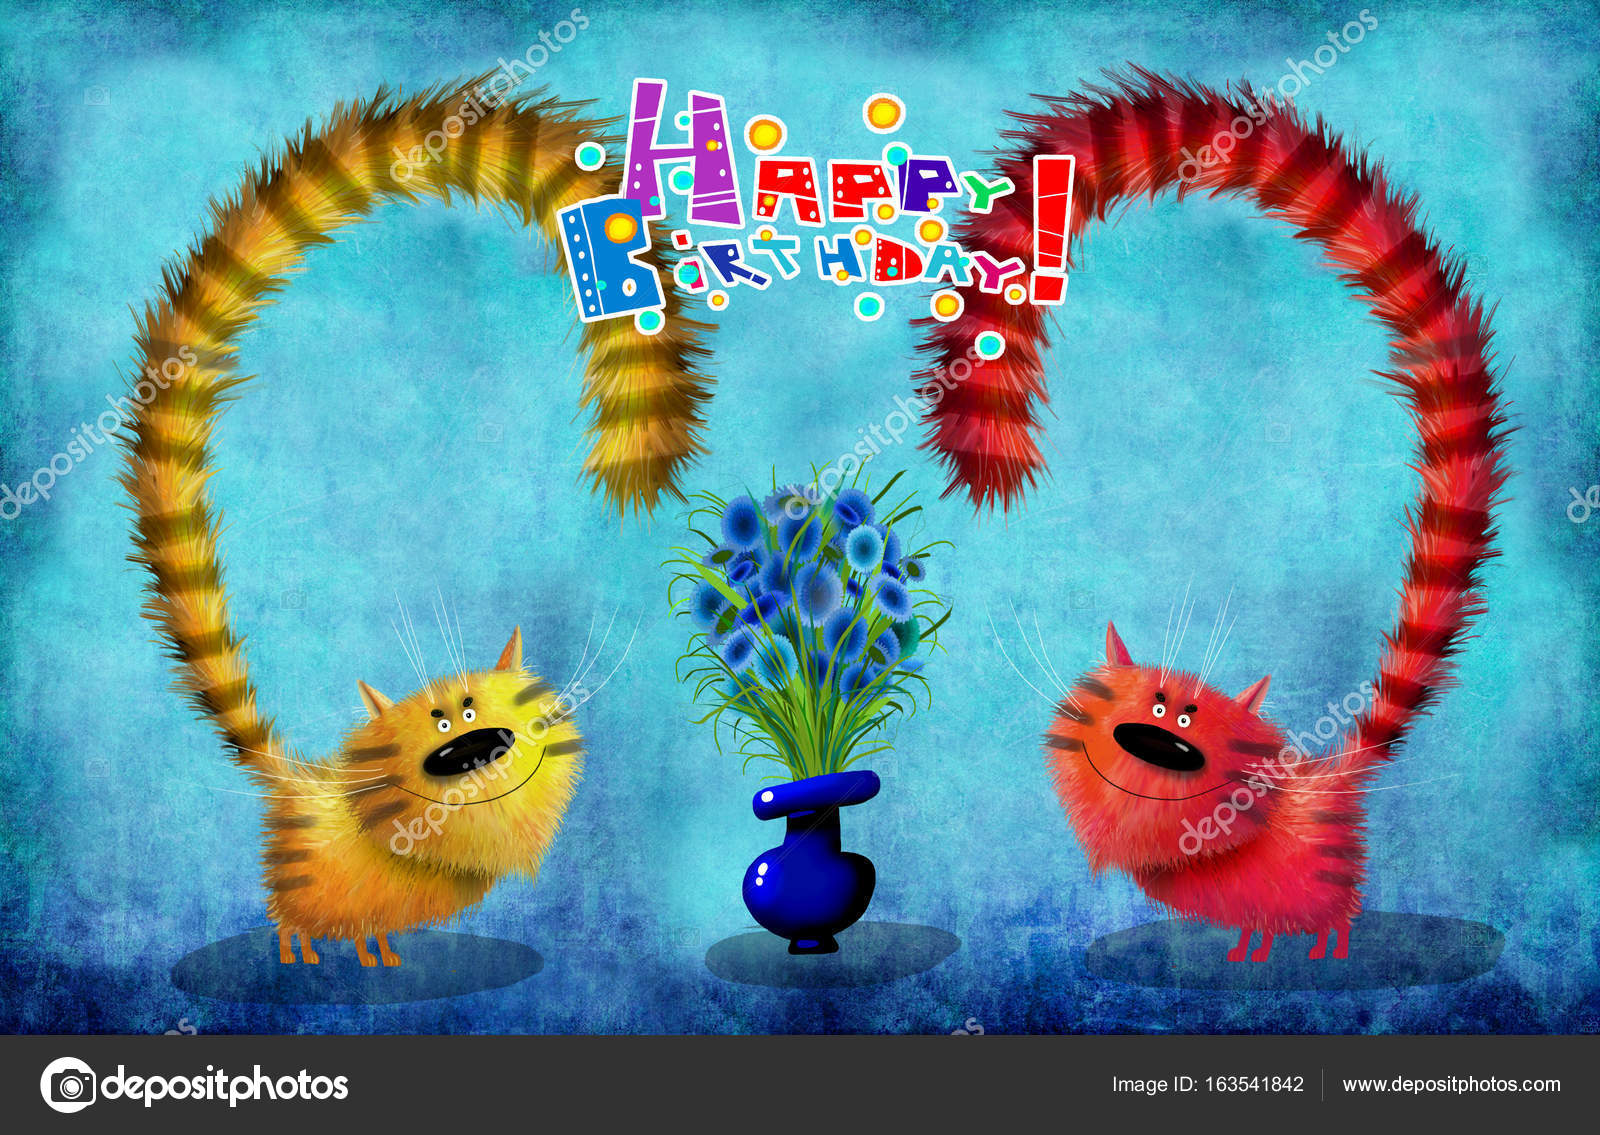 A Nice Birthday Cardcolorful Cats Twins Standing Next To Vase With Beautiful Bunch Of Flowers On The Deep Blue Background